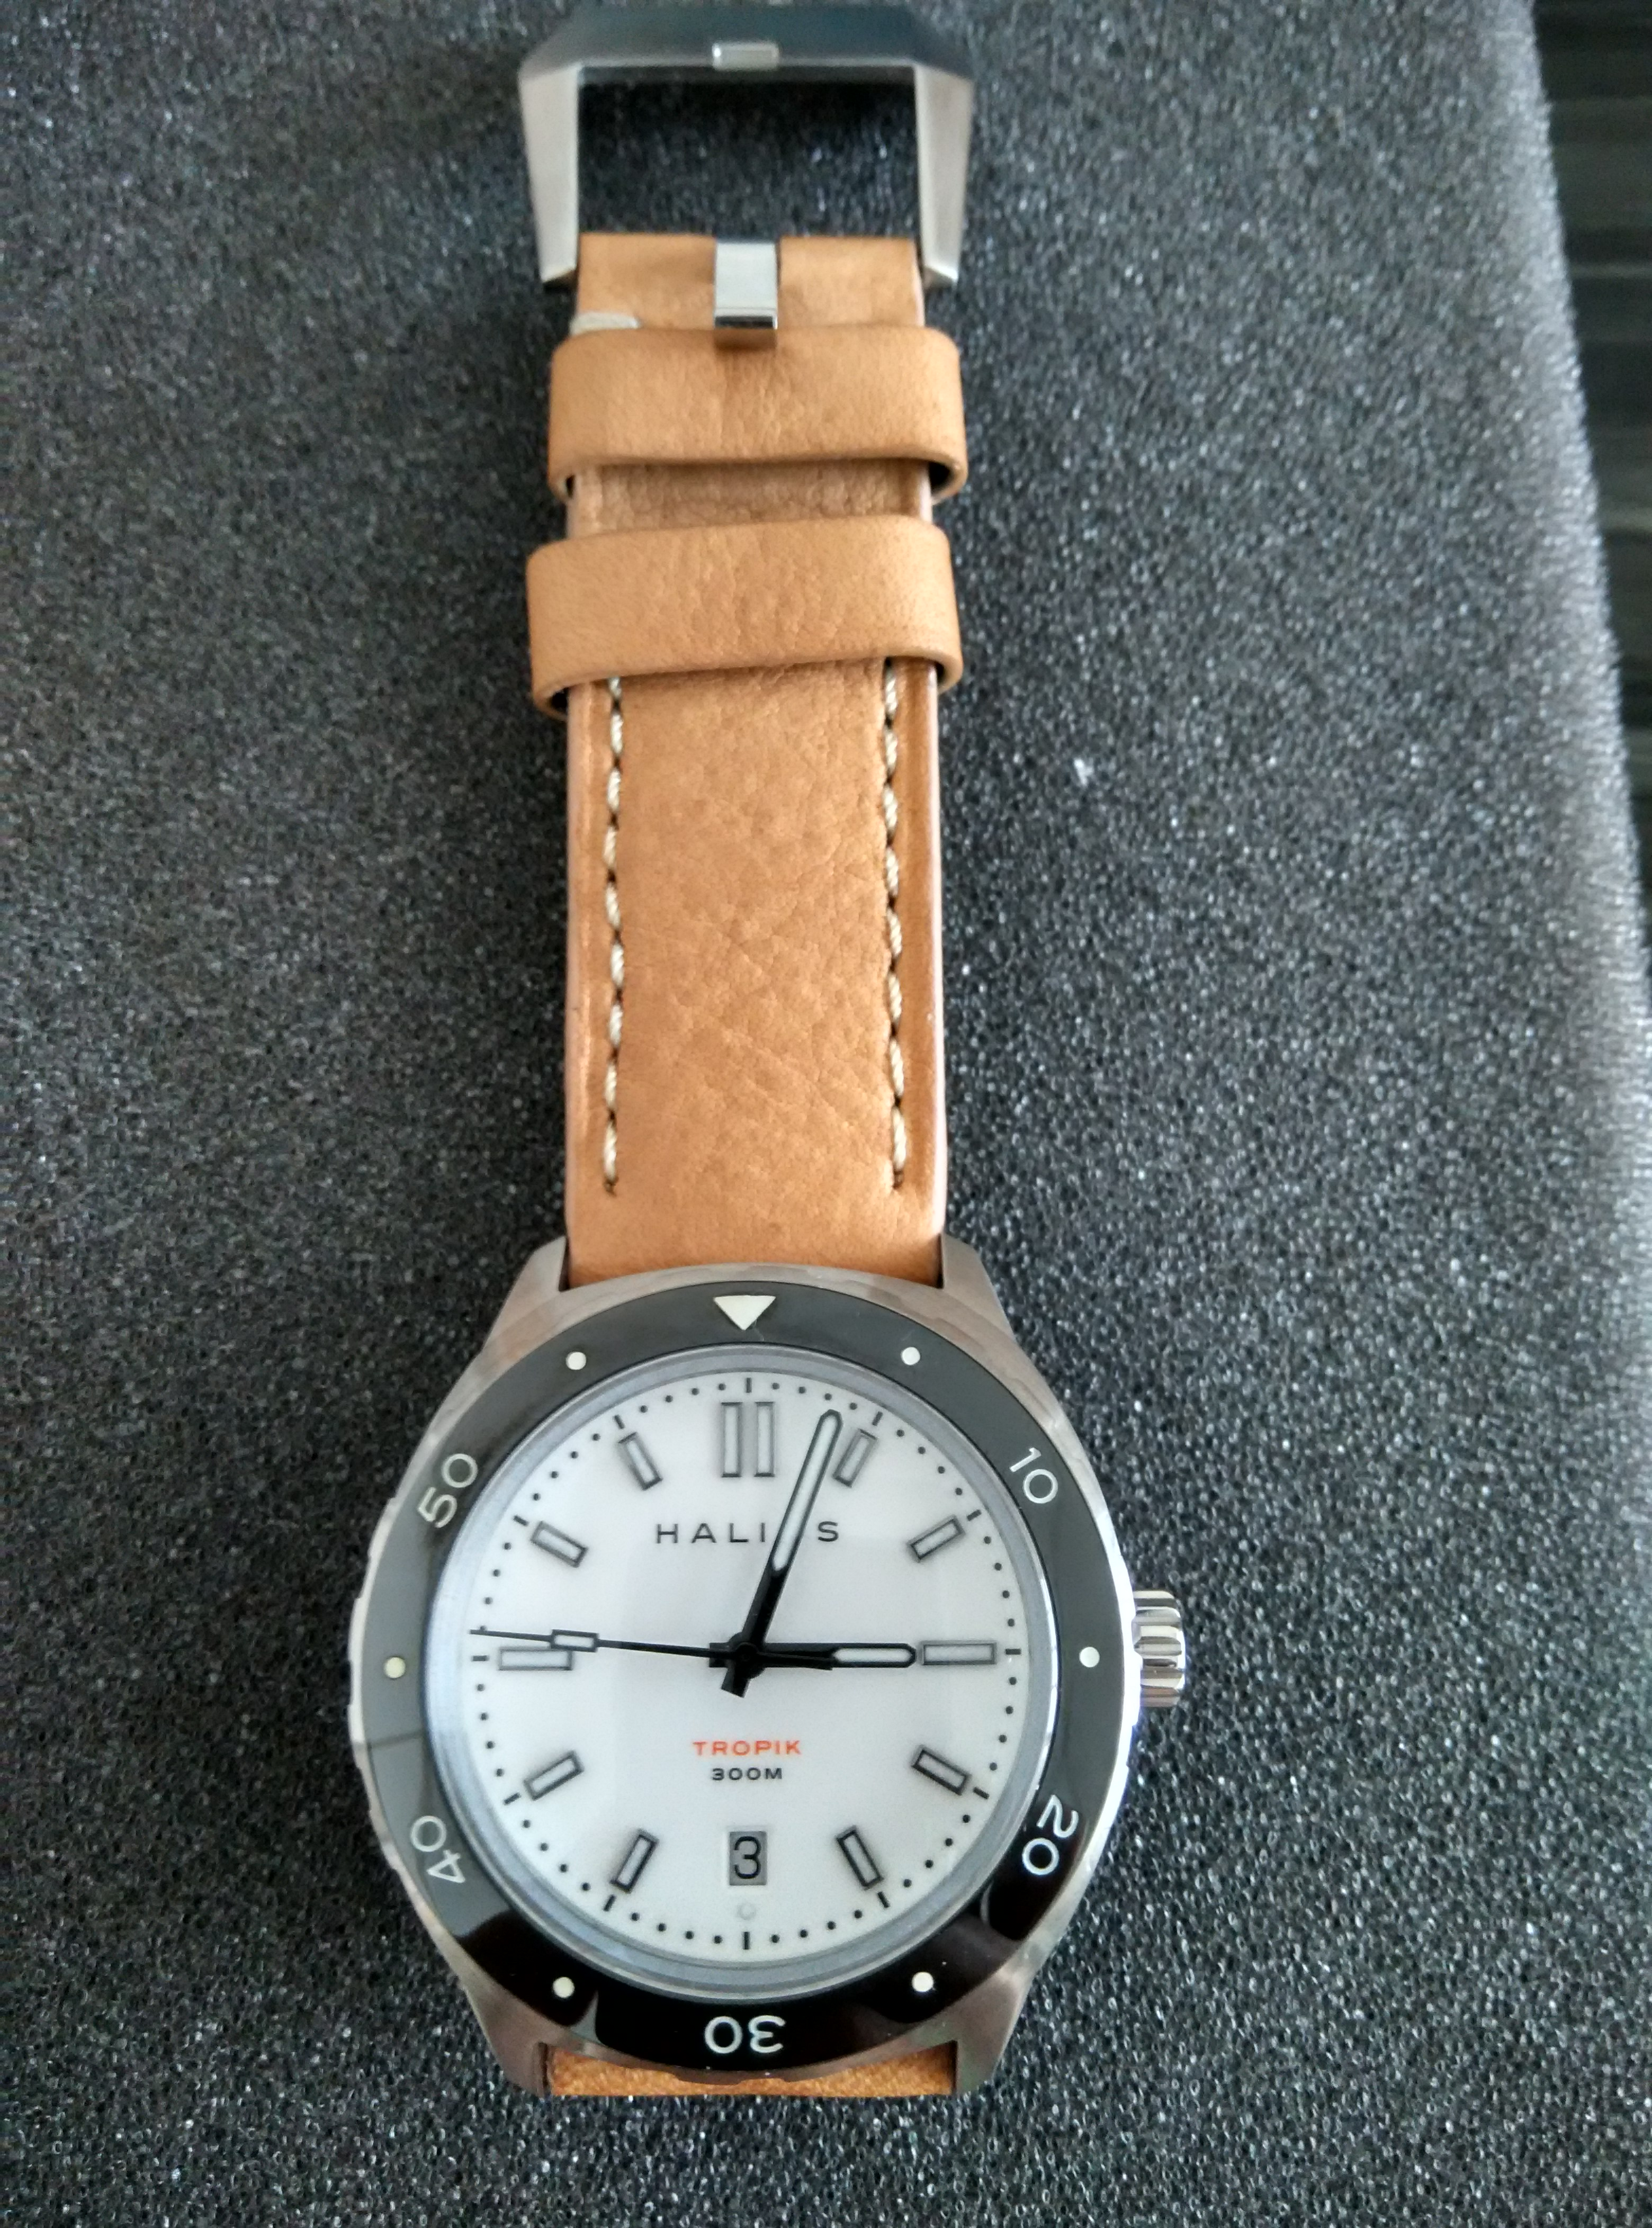 Halios Tropik SS White Dial/Black BezelFull set with 4 straps  like new condition